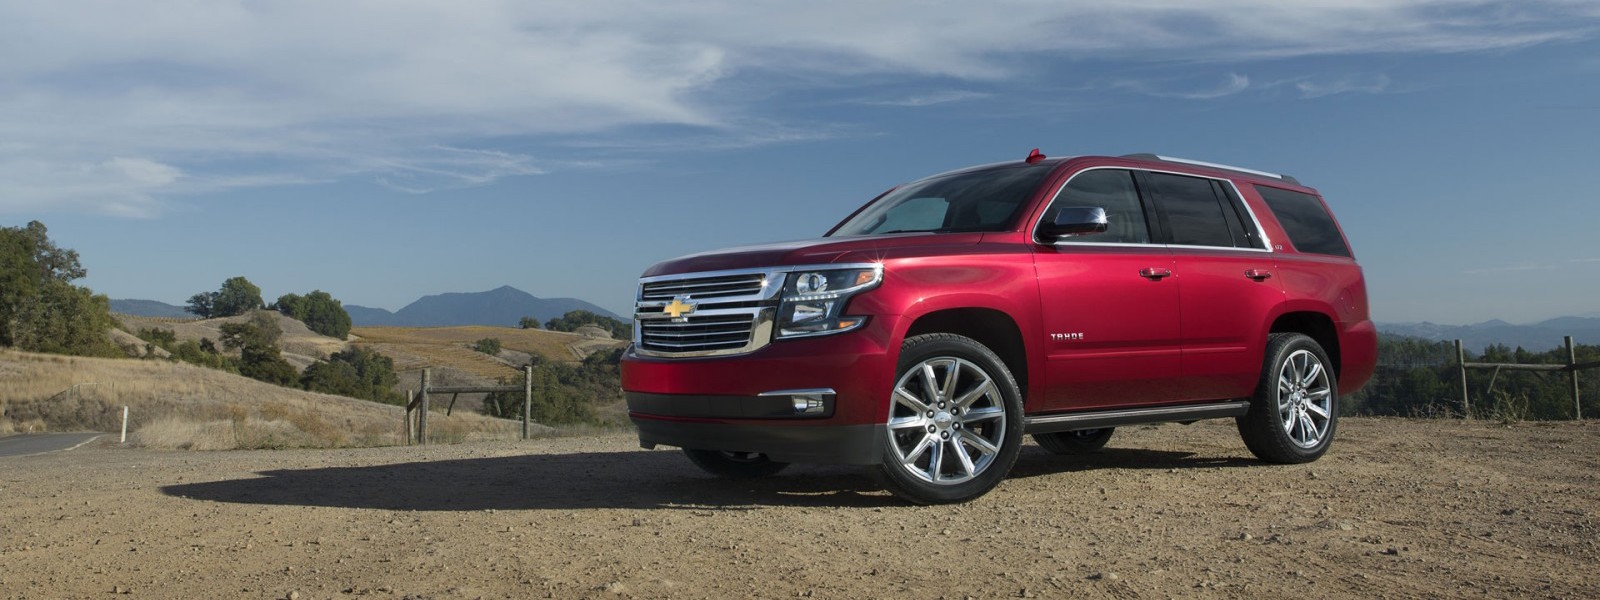 Chevy Tahoe Design